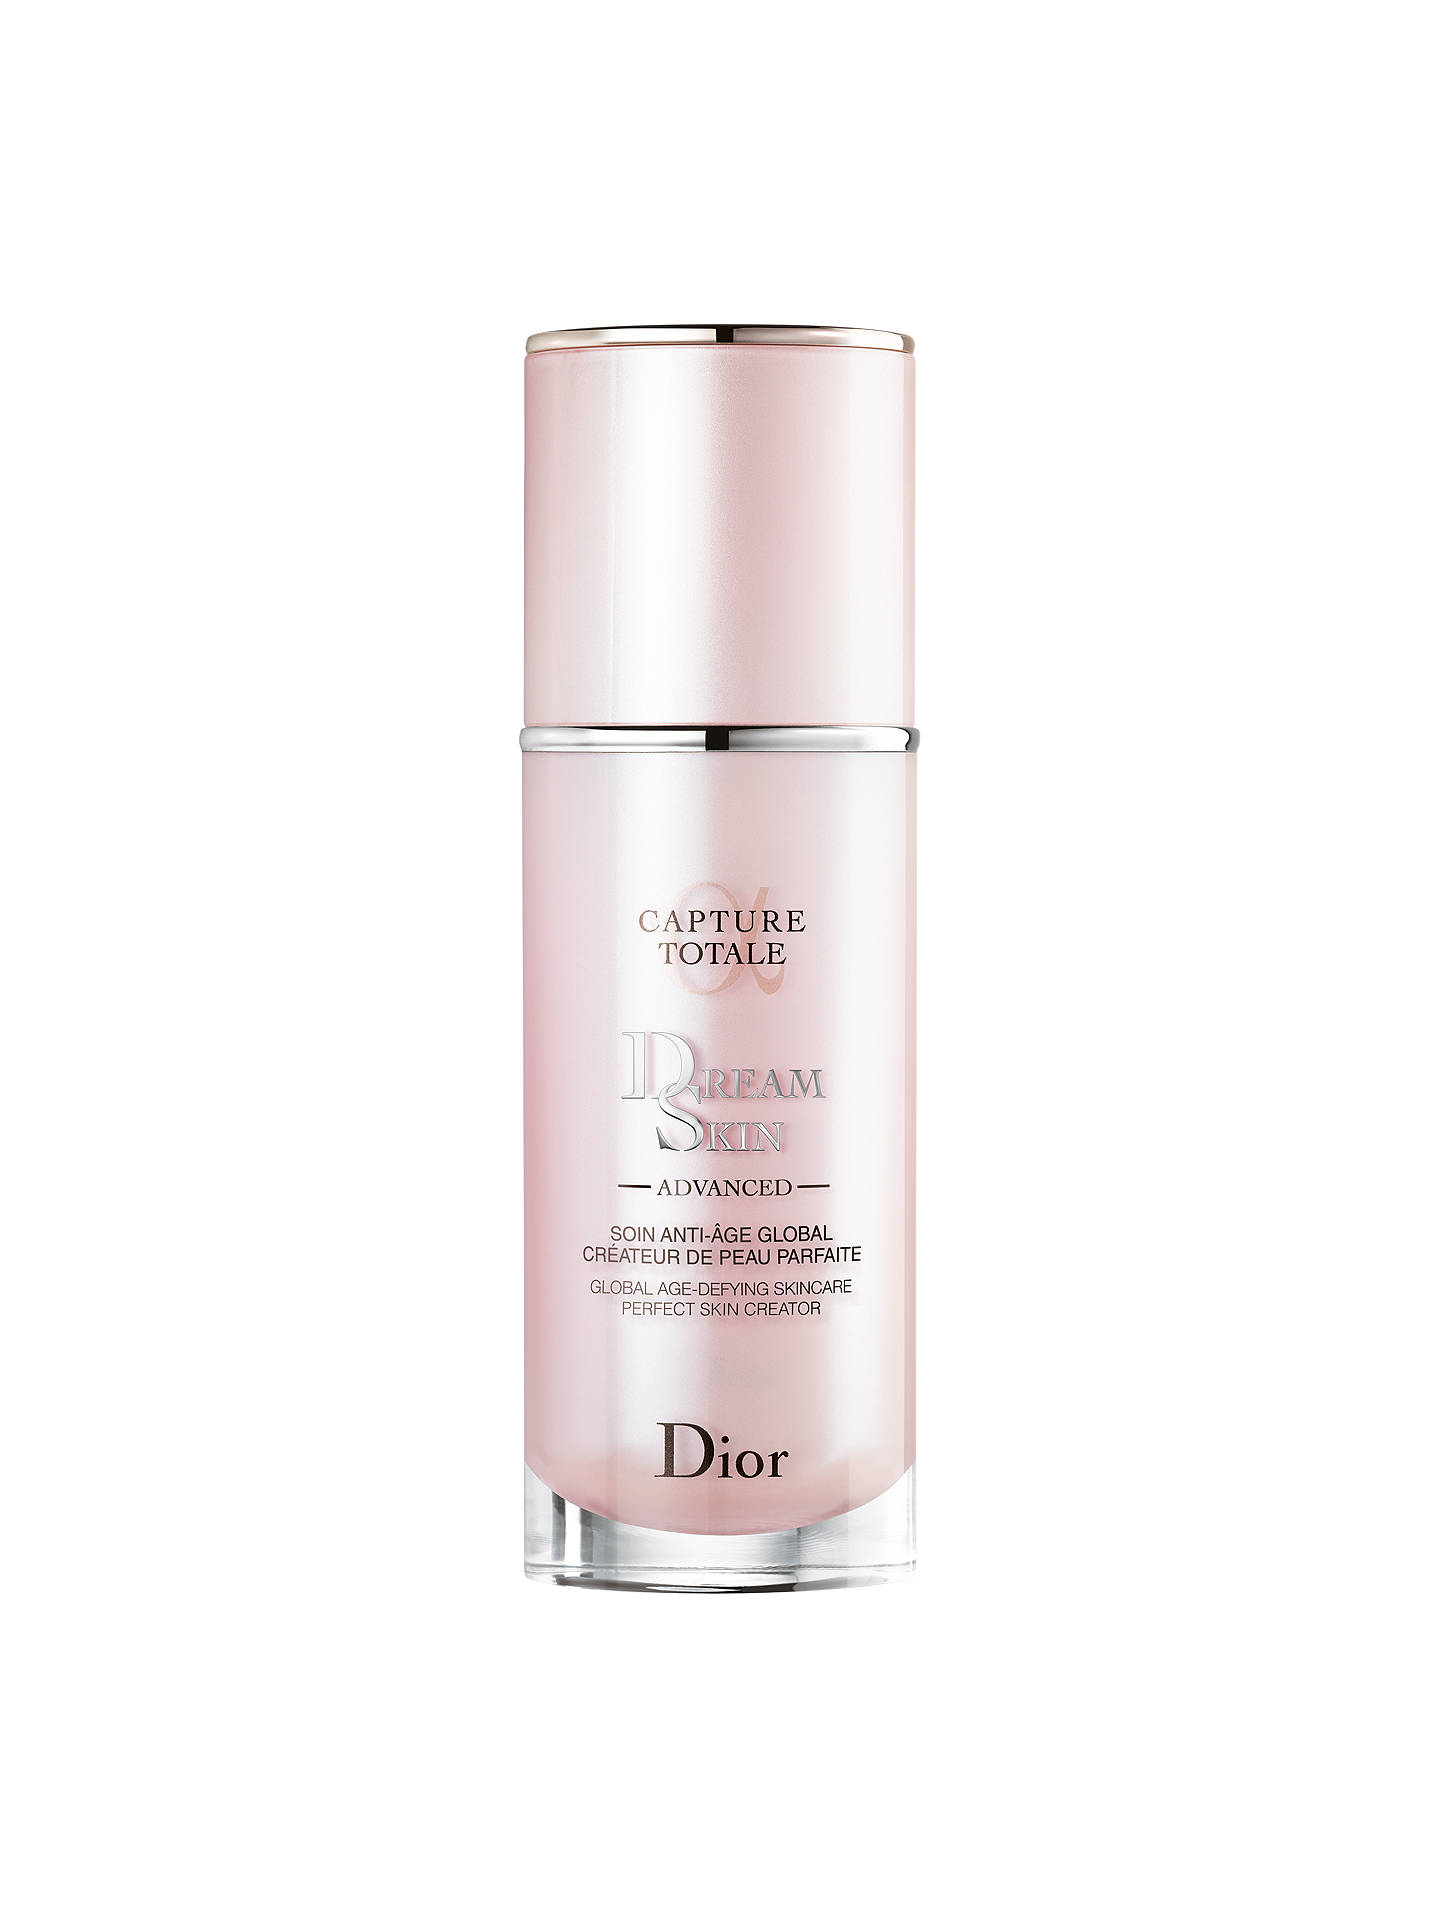 f8c08b39c7 Dior Capture Totale Dreamskin Advanced at John Lewis & Partners